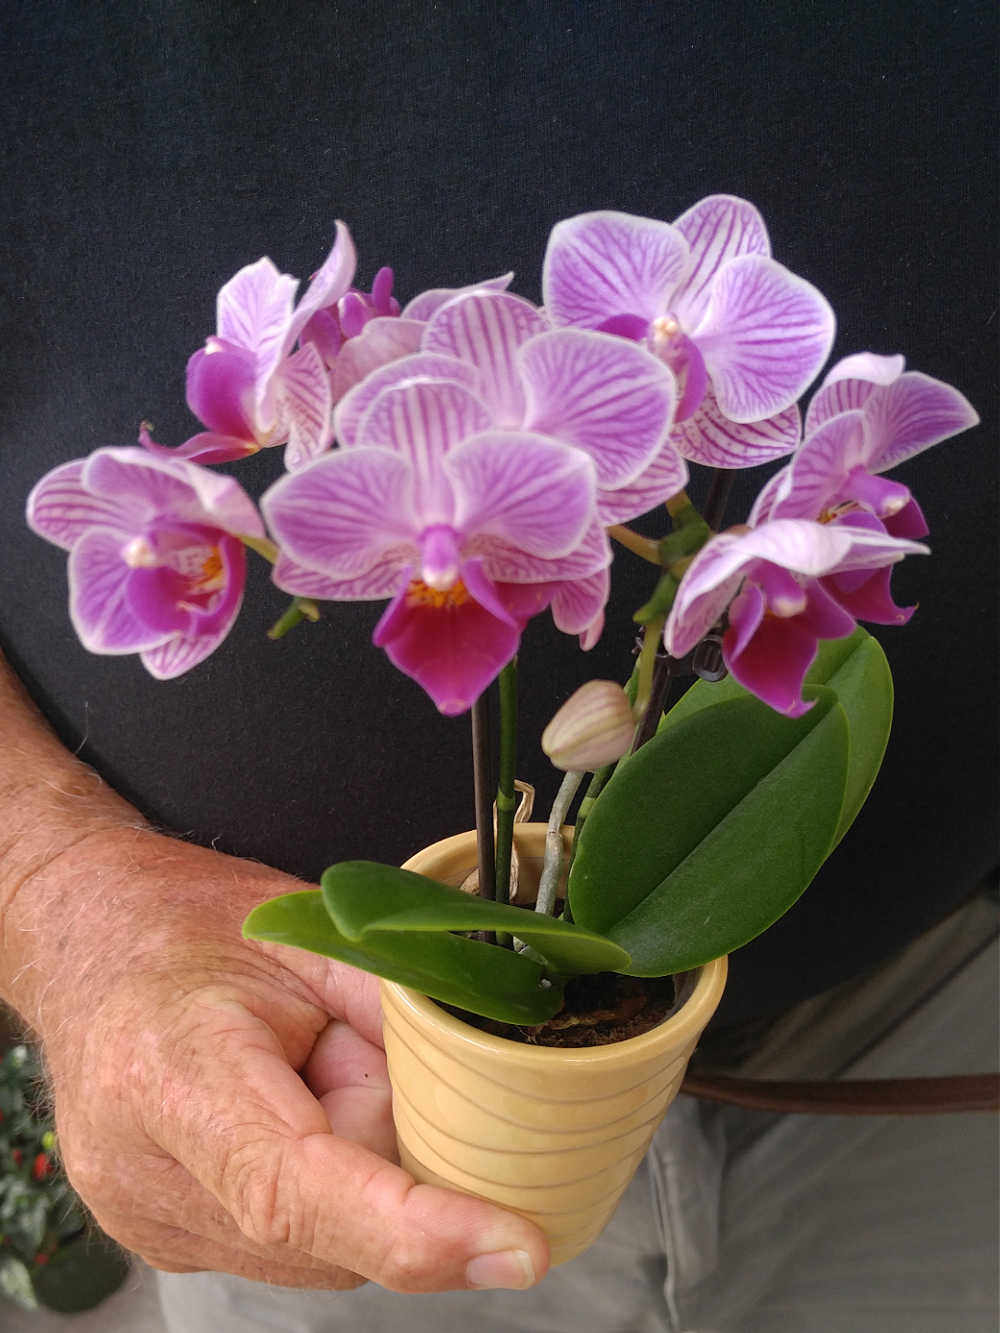 Phalaenopsis Orchid in a pot with a hand.